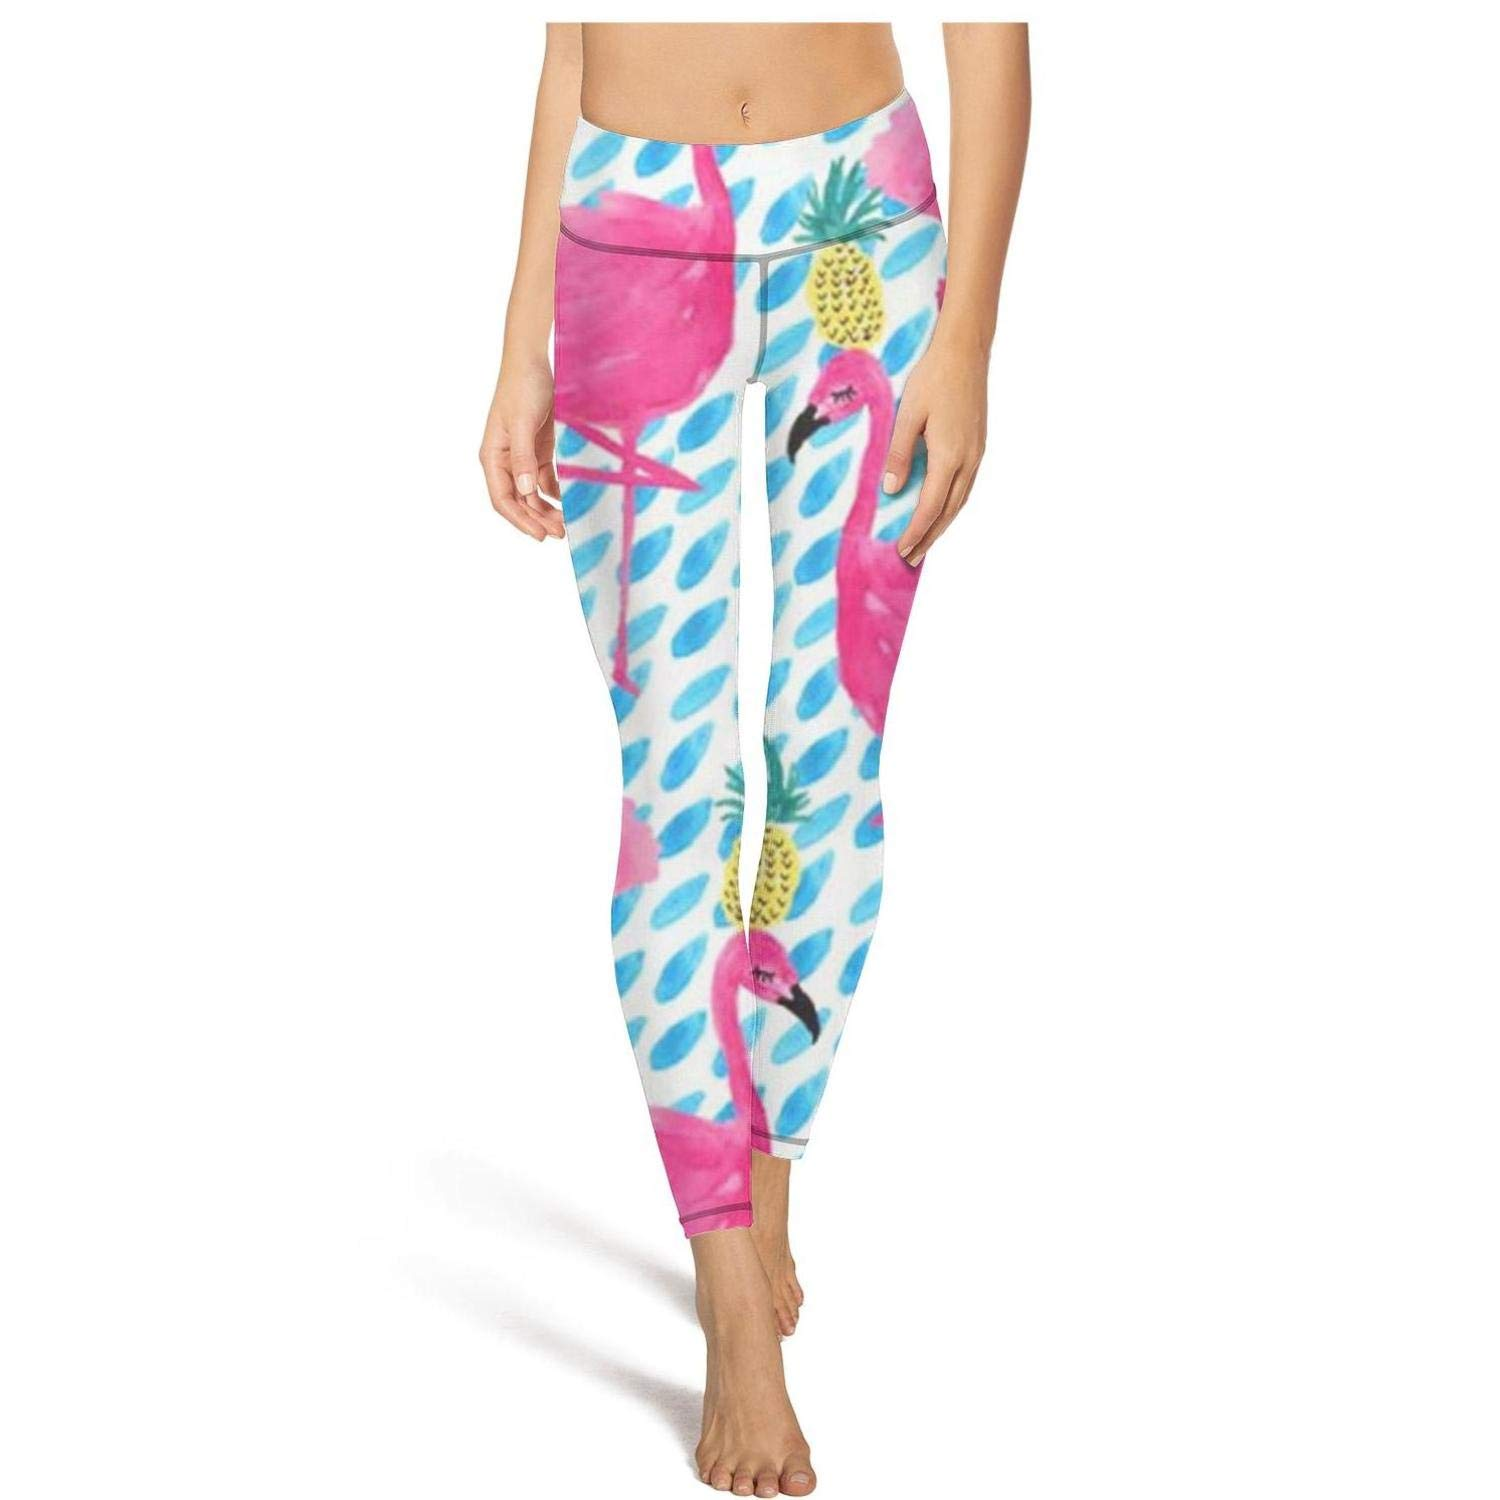 Womens Workout Running Legging Party Flamingos Pineapple Funny Tummy Control Yoga Pants Stretch